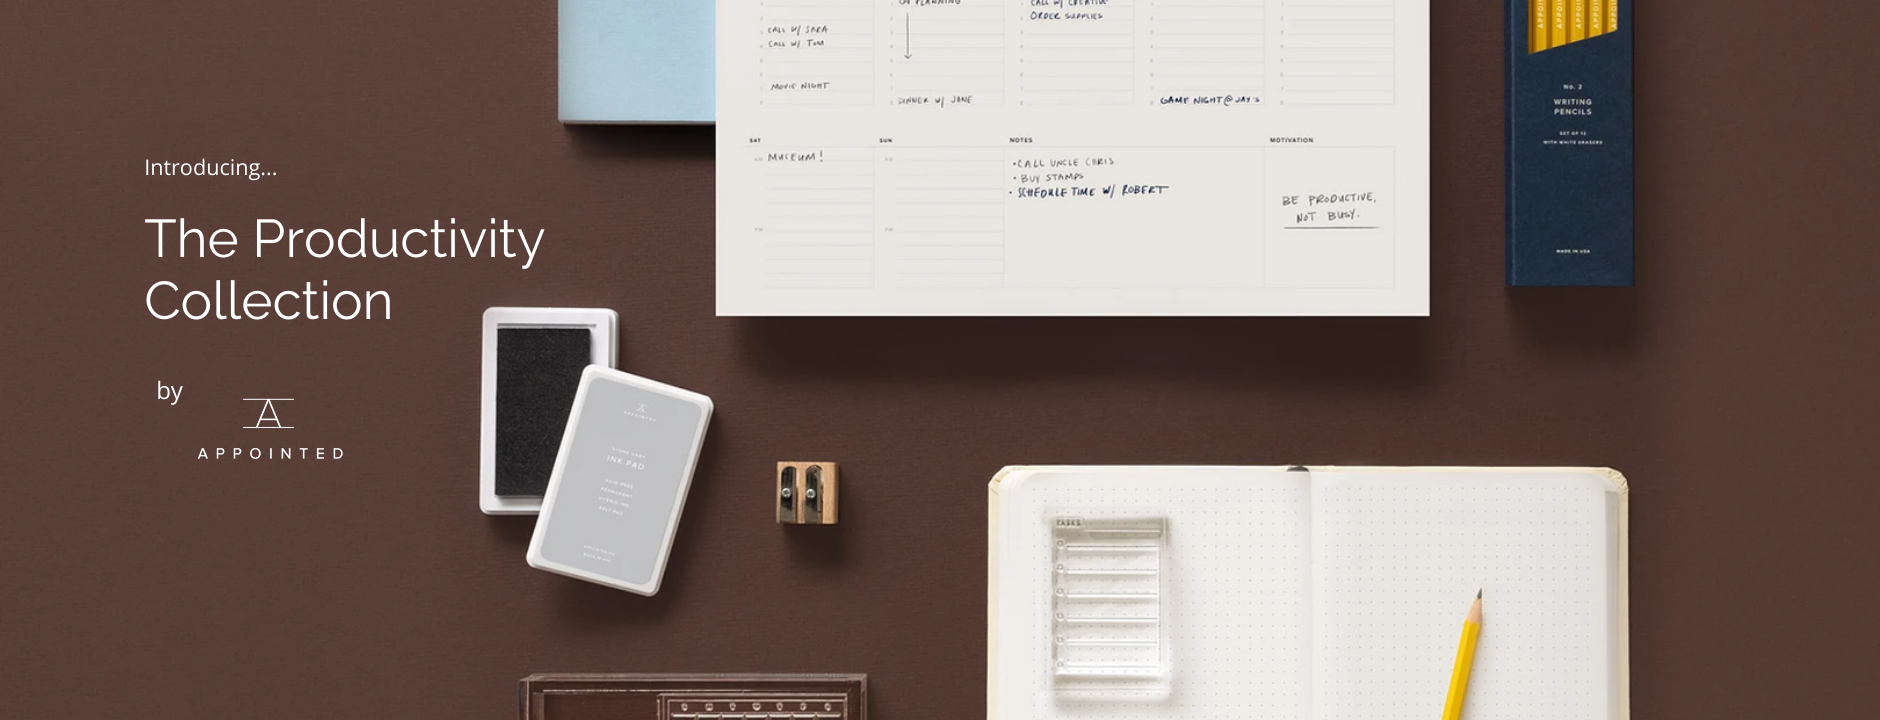 Introducing the Appointed Productivity Collection. The collection includes weekly planning pads, stamps, A5 notebooks and more to help you stay on top of things.